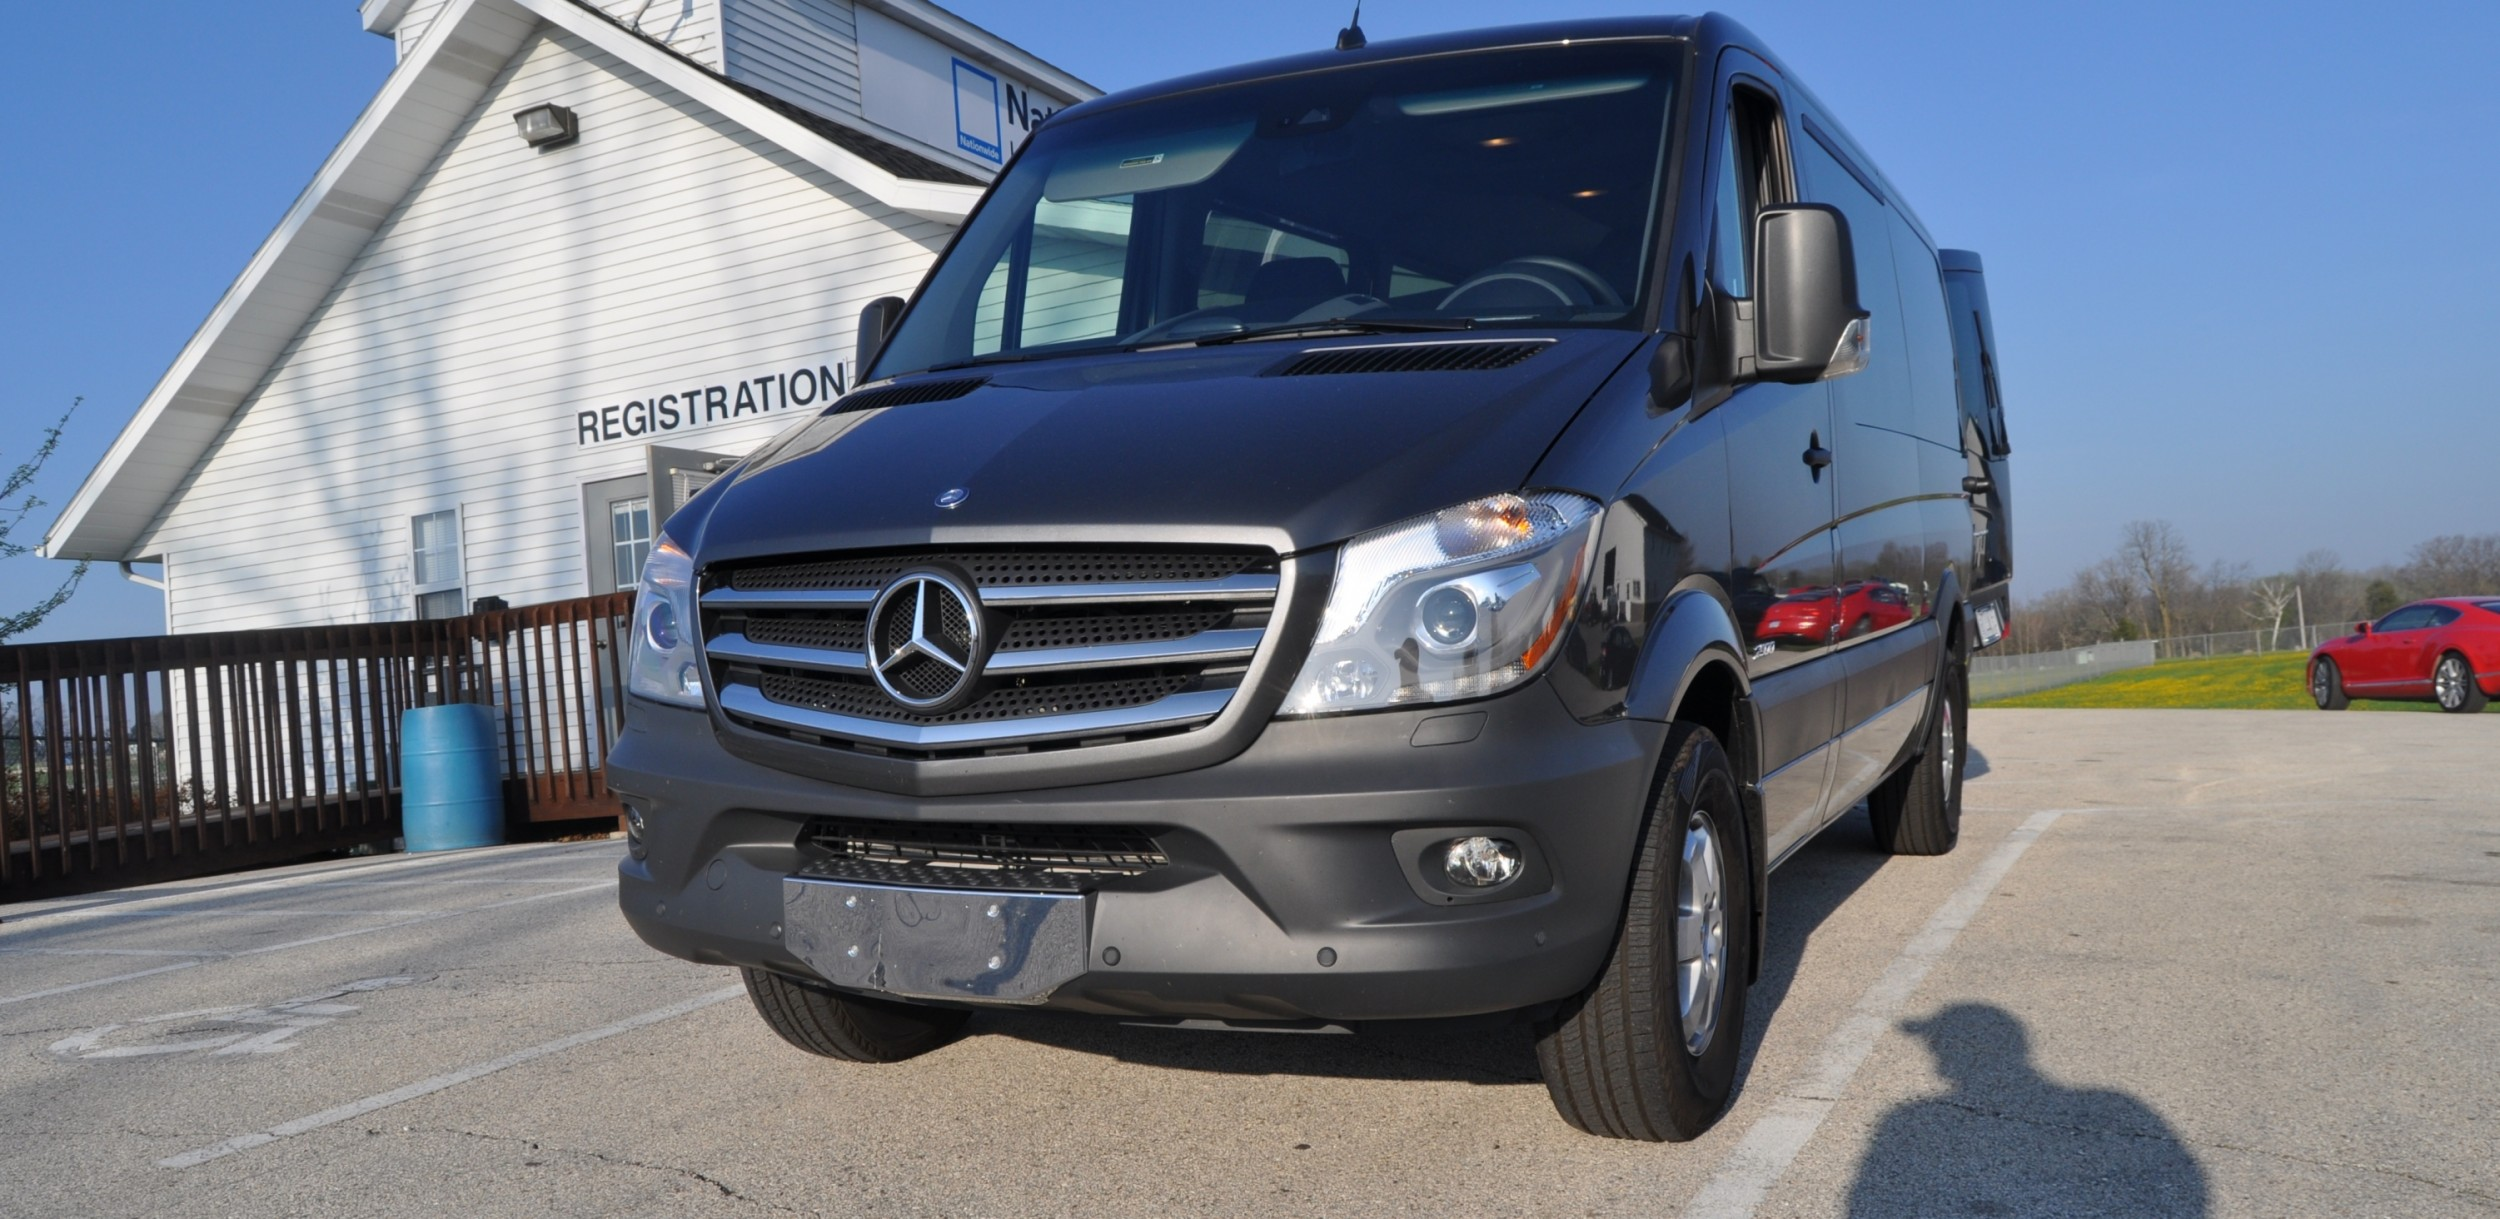 New 2014 Mercedes Benz Sprinter Vans In Real Life 2015 4x4 Model Details 4